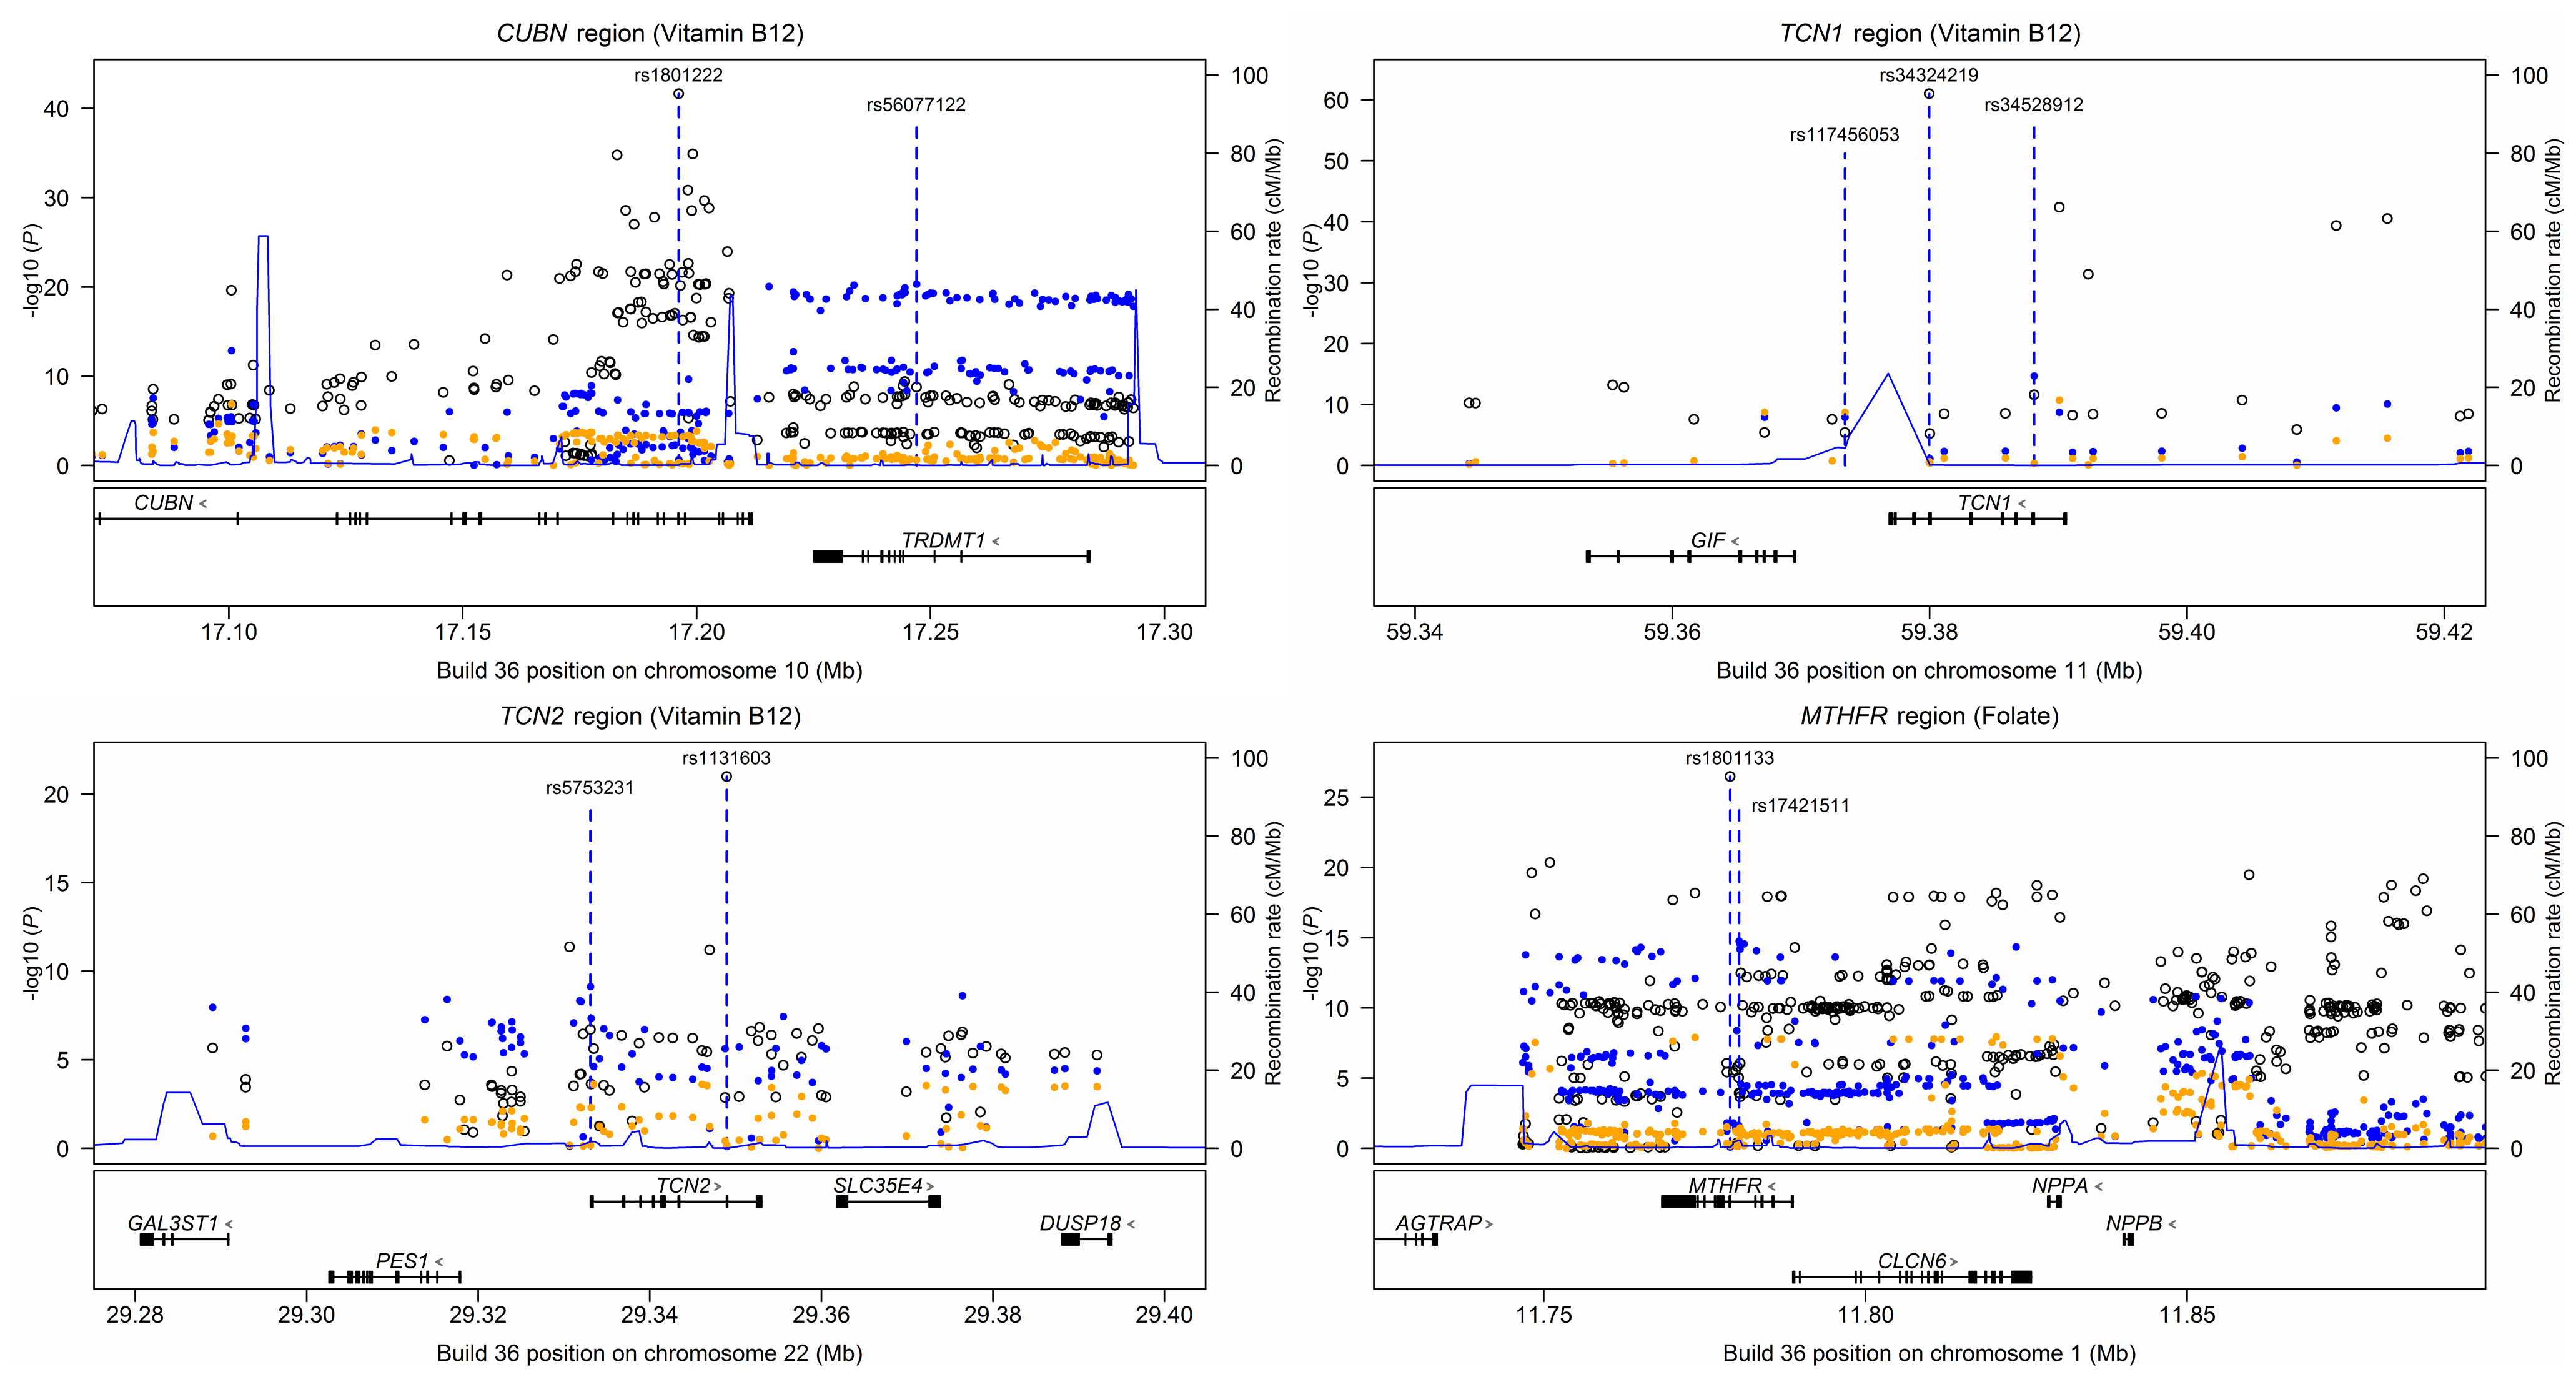 Regional plots illustrating conditional analyses of loci with more than one independent association signal for serum B<sub>12</sub> (<i>CUBN</i>, <i>TCN1</i> and <i>TCN2</i>) or serum folate (<i>MTHFR</i>).